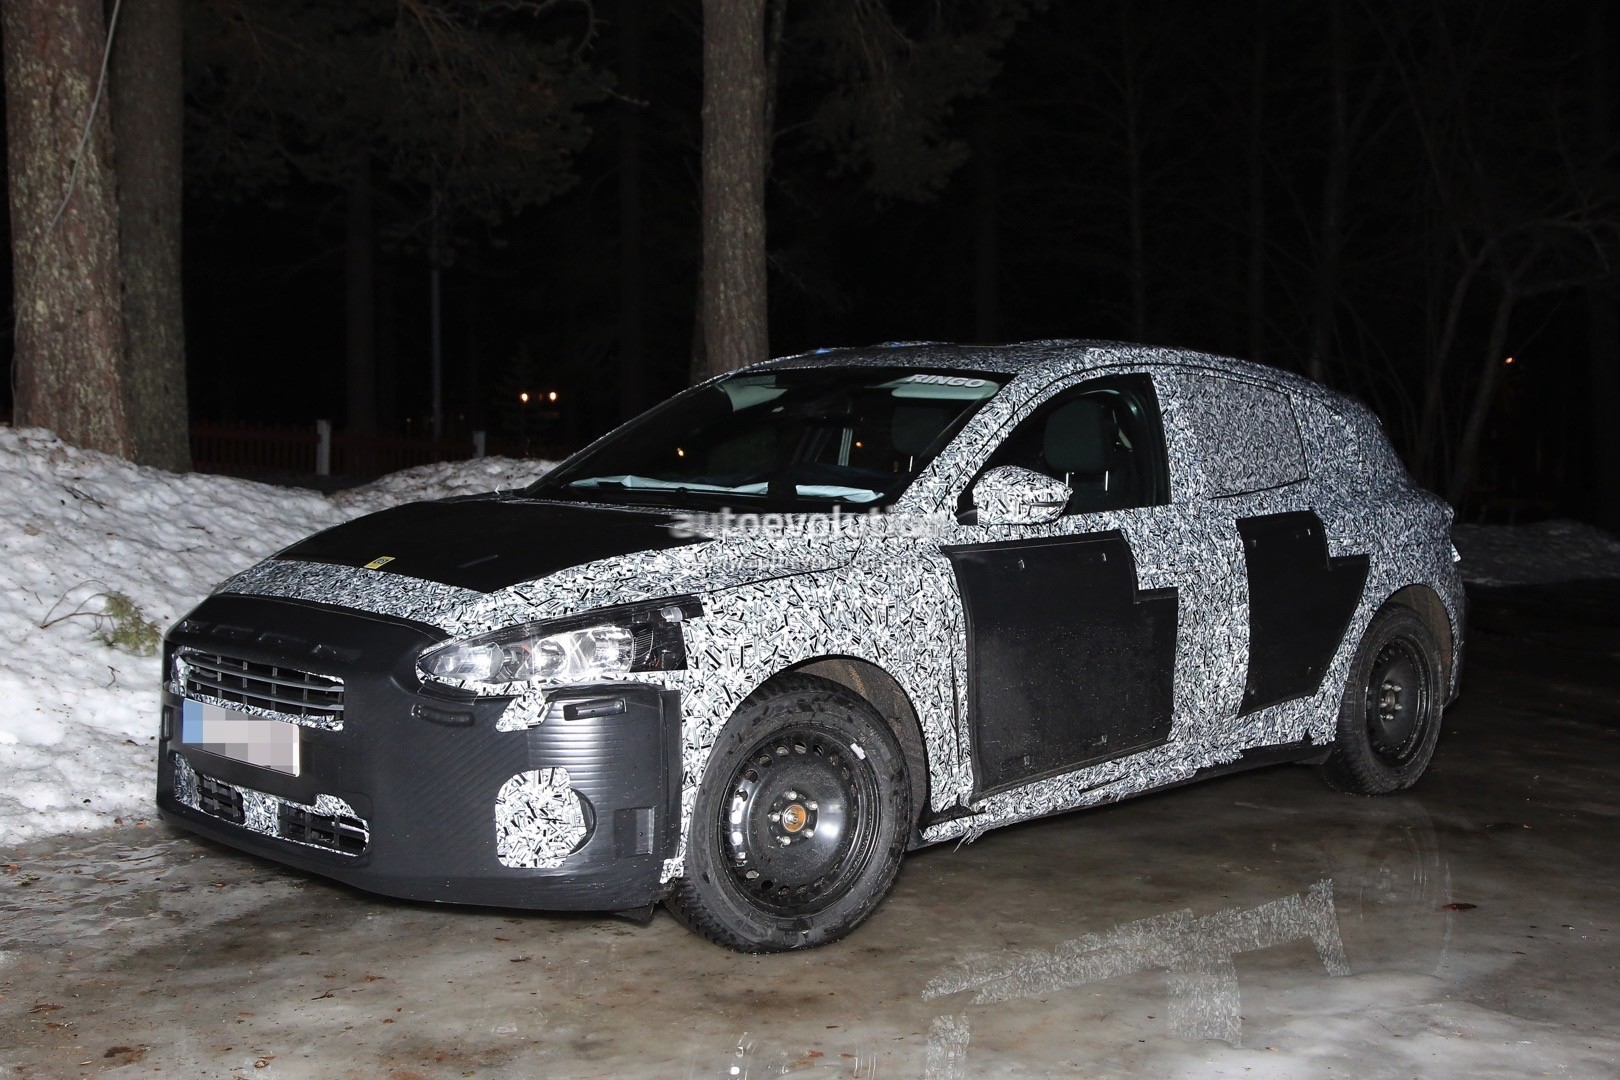 2018 Ford Focus Mk4 Spied Wearing Production Body Shell  autoevolution